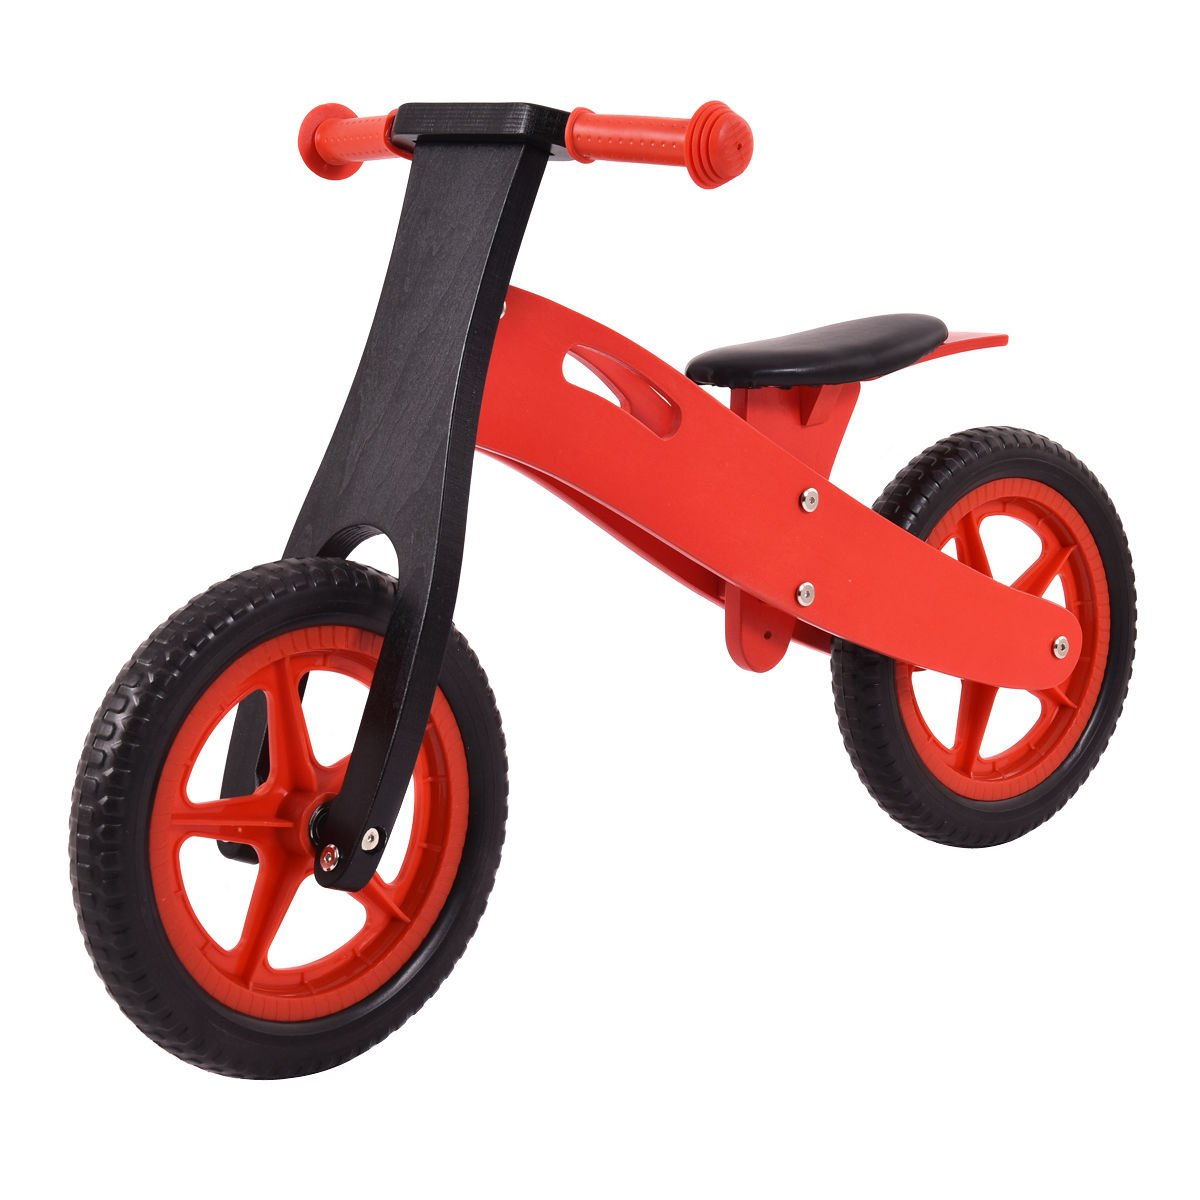 Costzon 12 Wooden No-Pedal Balance Bike Classic Bicycle for Kids from Age 2-5 w/Adjustable Seat